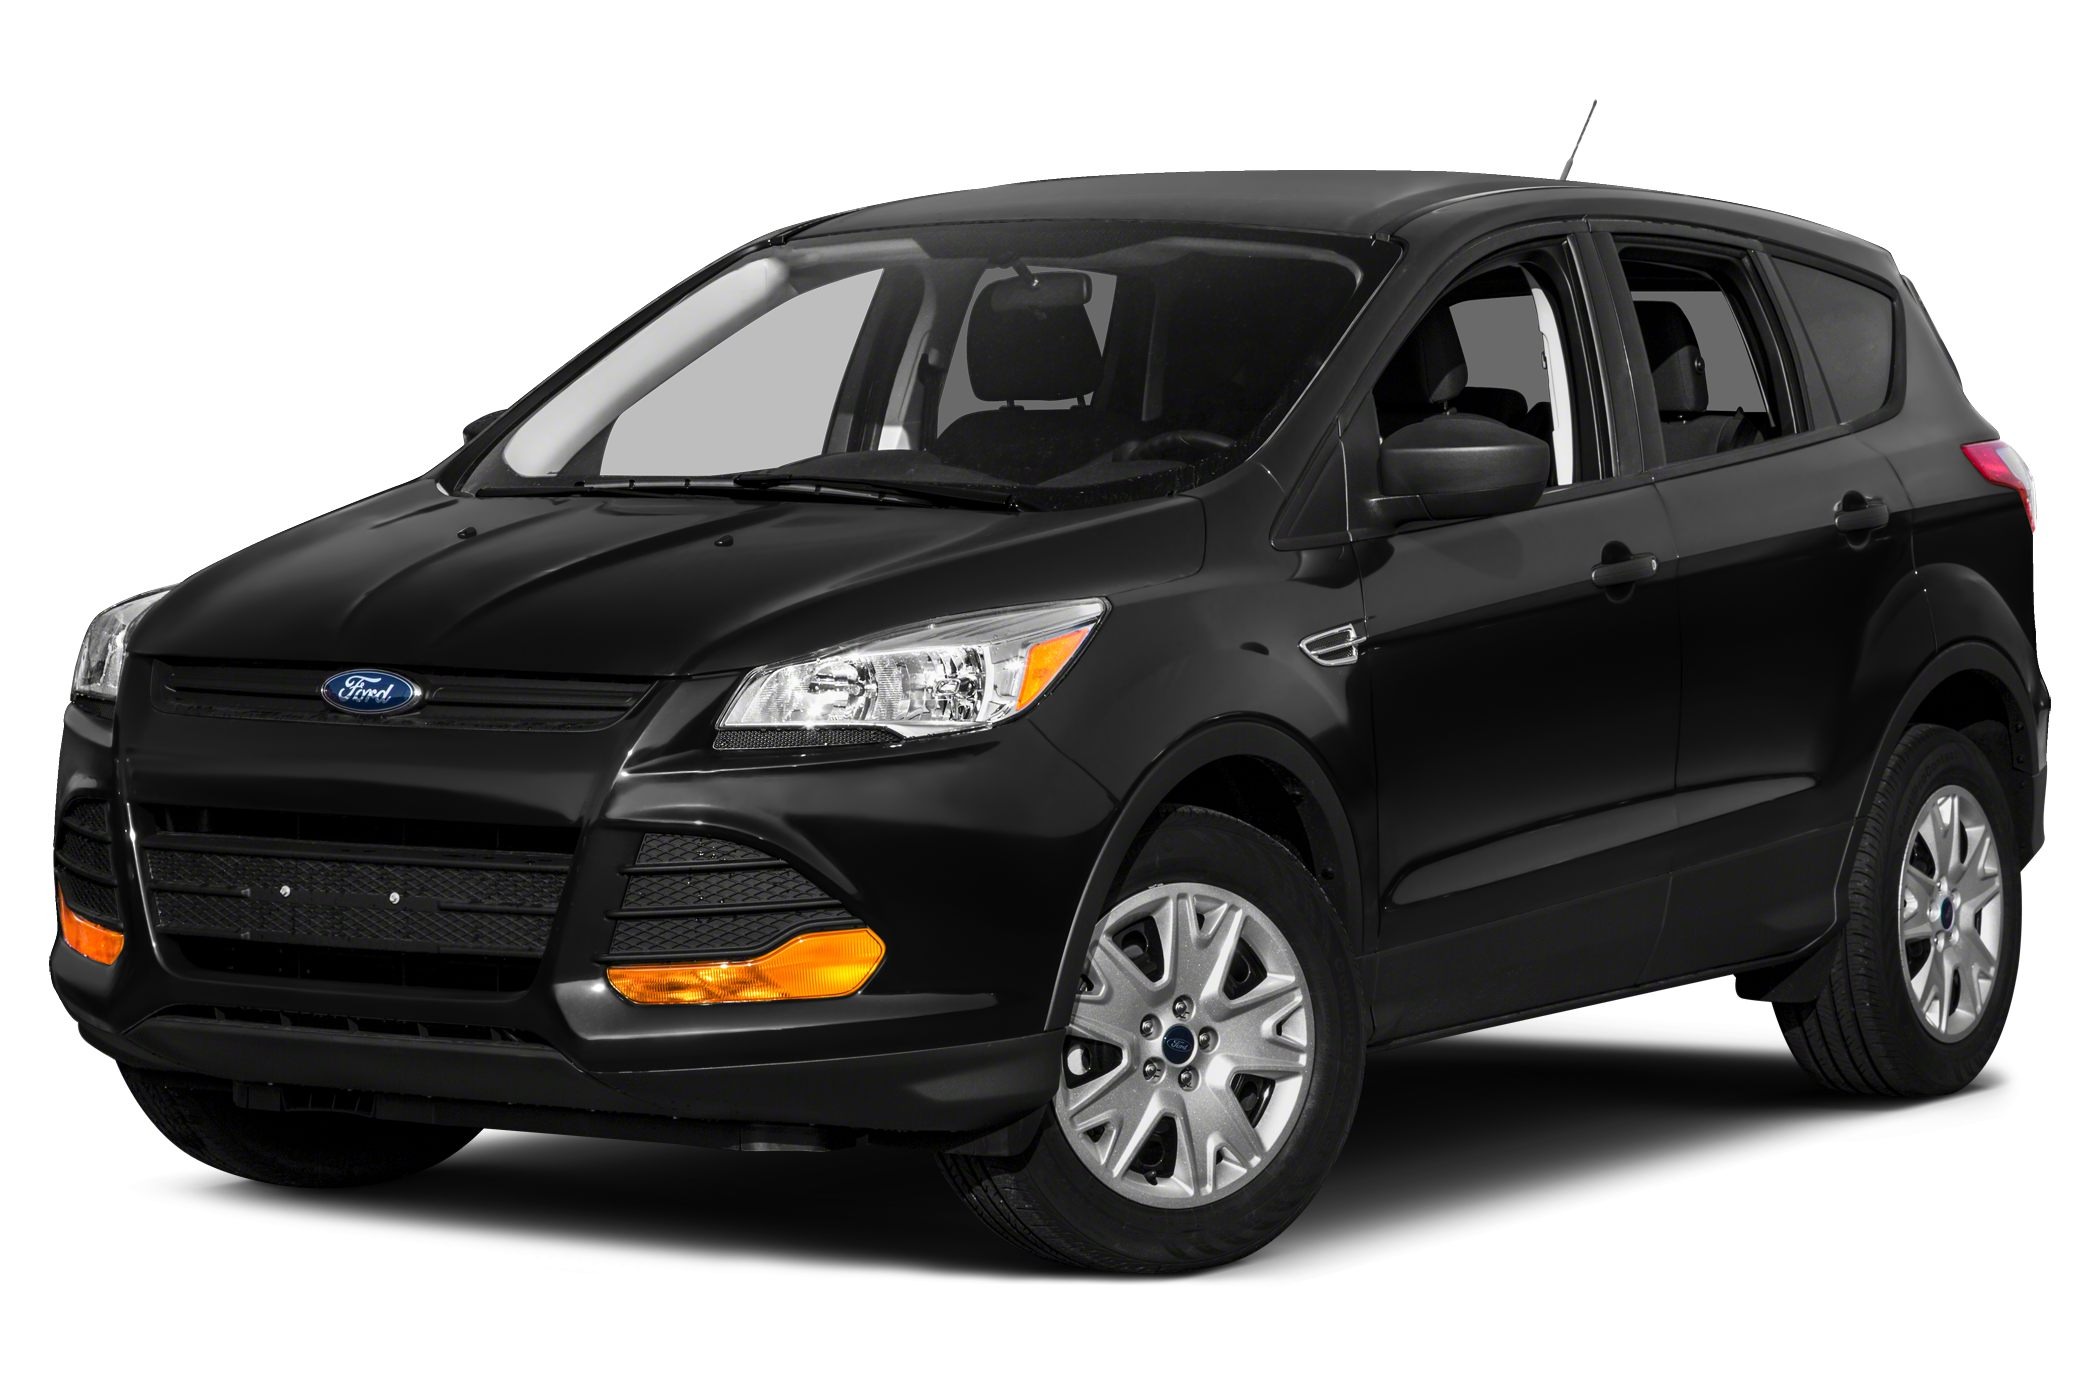 2014 Ford Escape SE Take command of the road in the 2014 Ford Escape Youll appreciate its safety